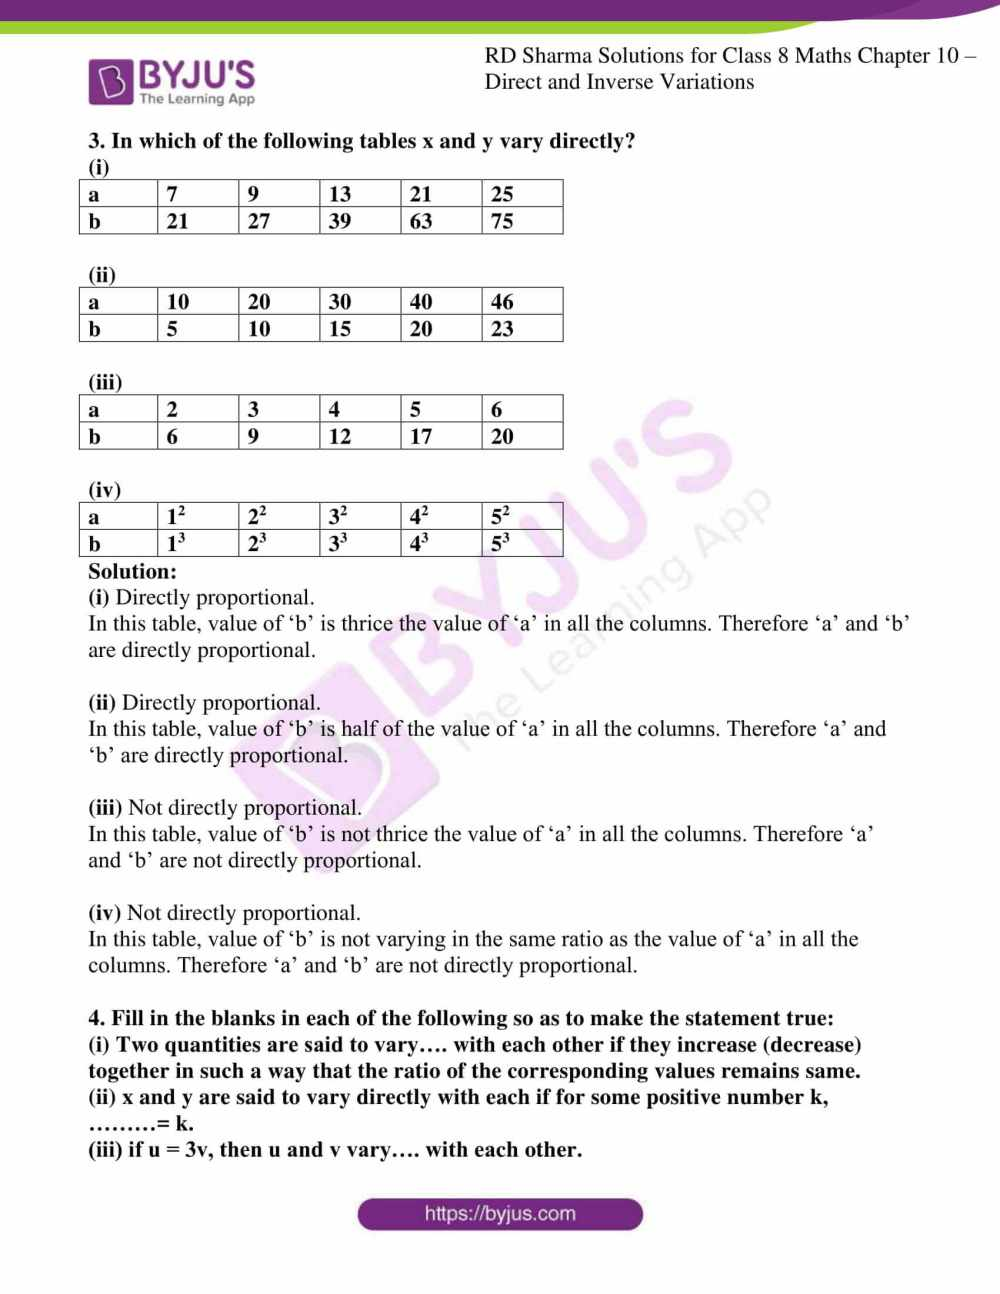 medium resolution of RD Sharma Solutions for Class 8 Chapter 10 Direct and Inverse Variations  free download pdf